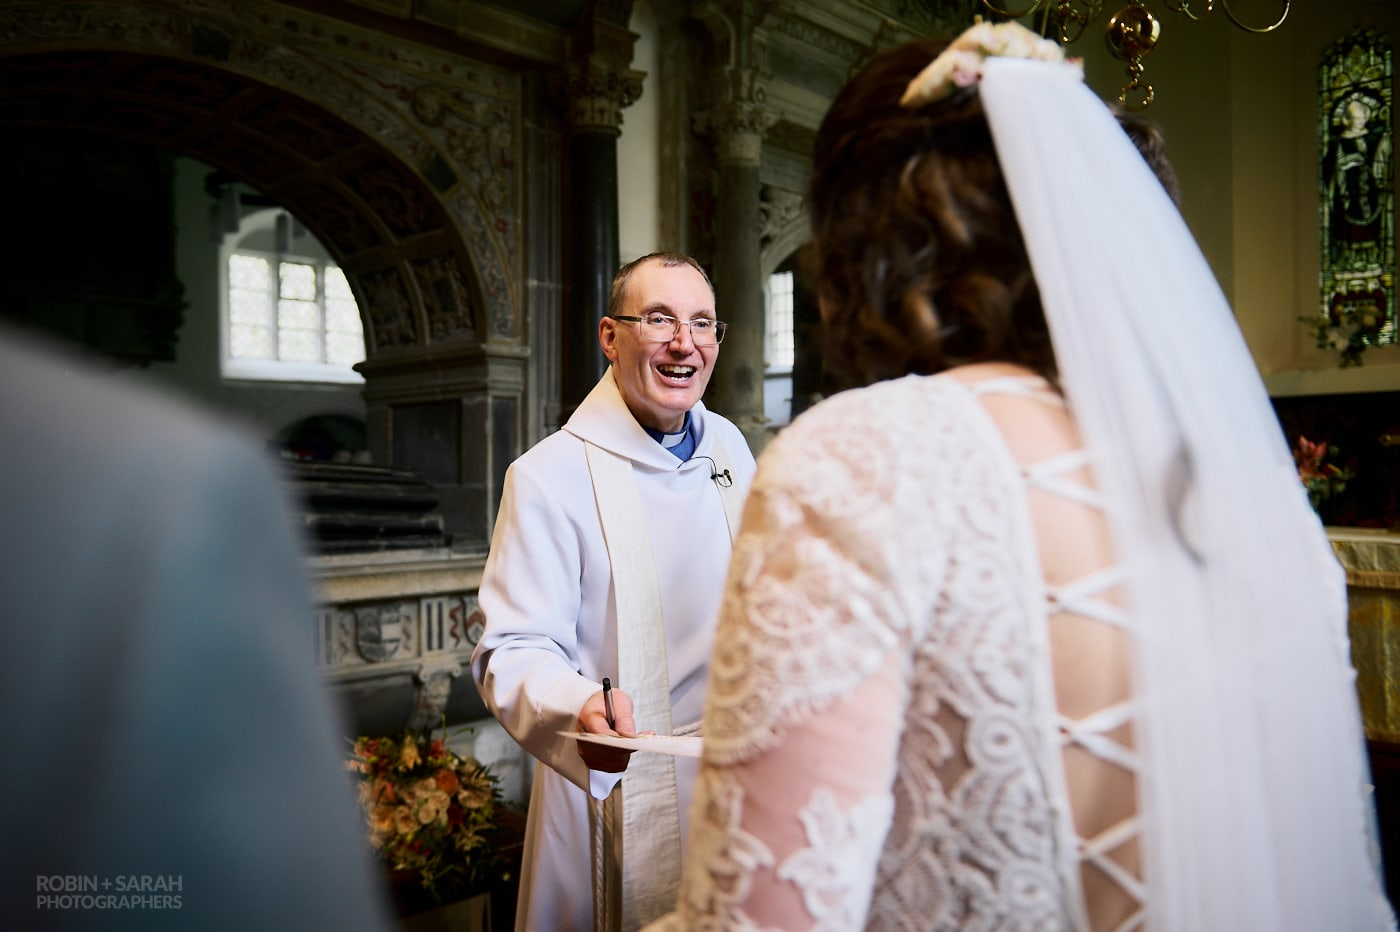 Vicar gives bride wedding certificate at Beoley church